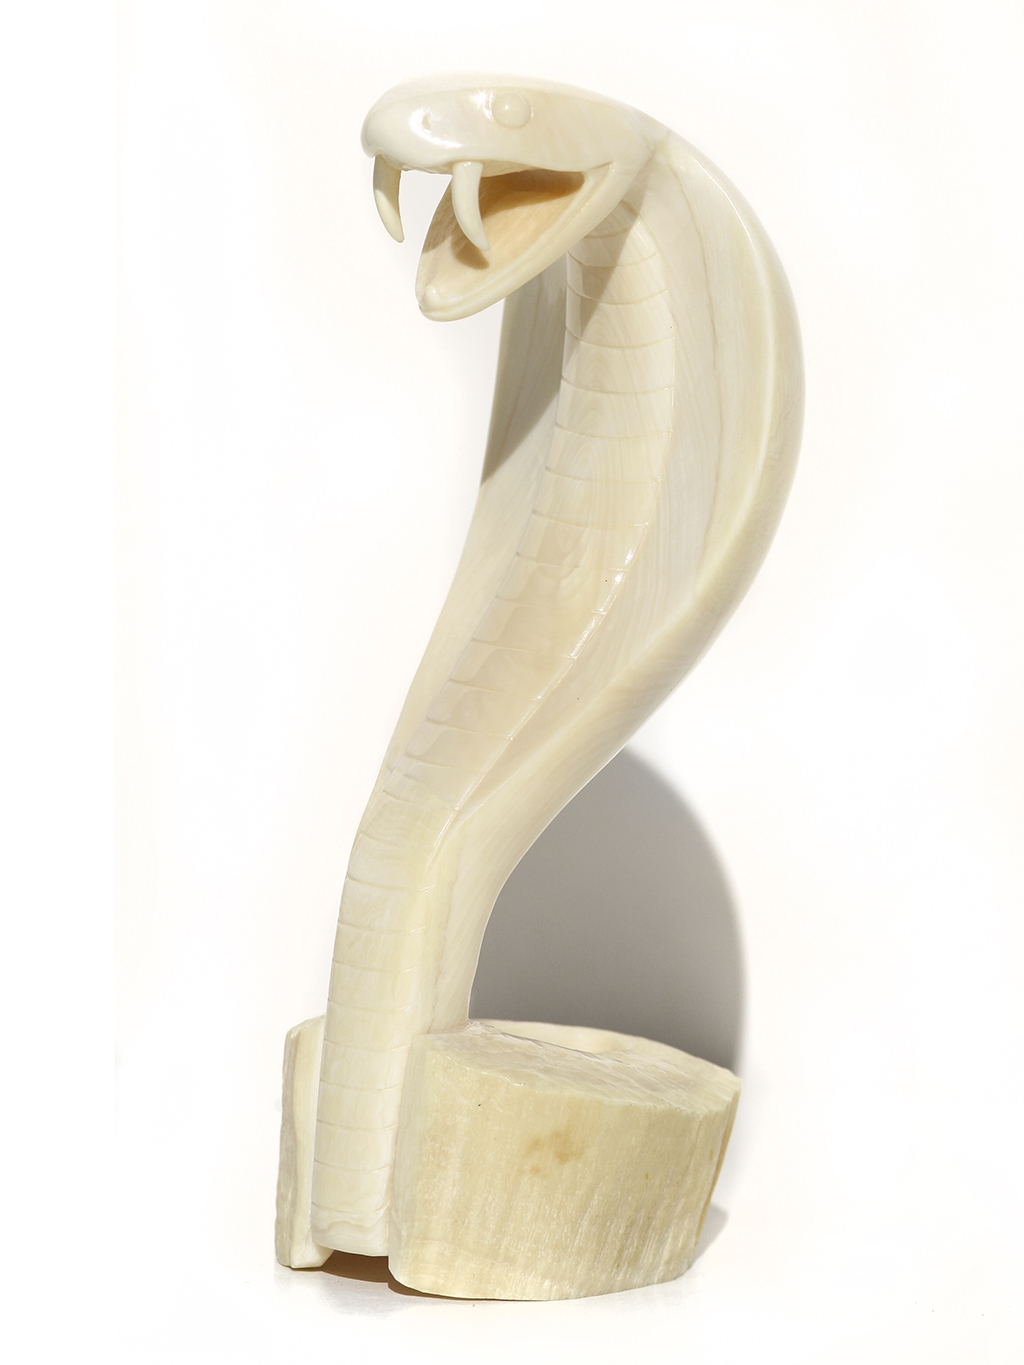 Armando Ramos Whale Tooth Carving - Deadly Cobra